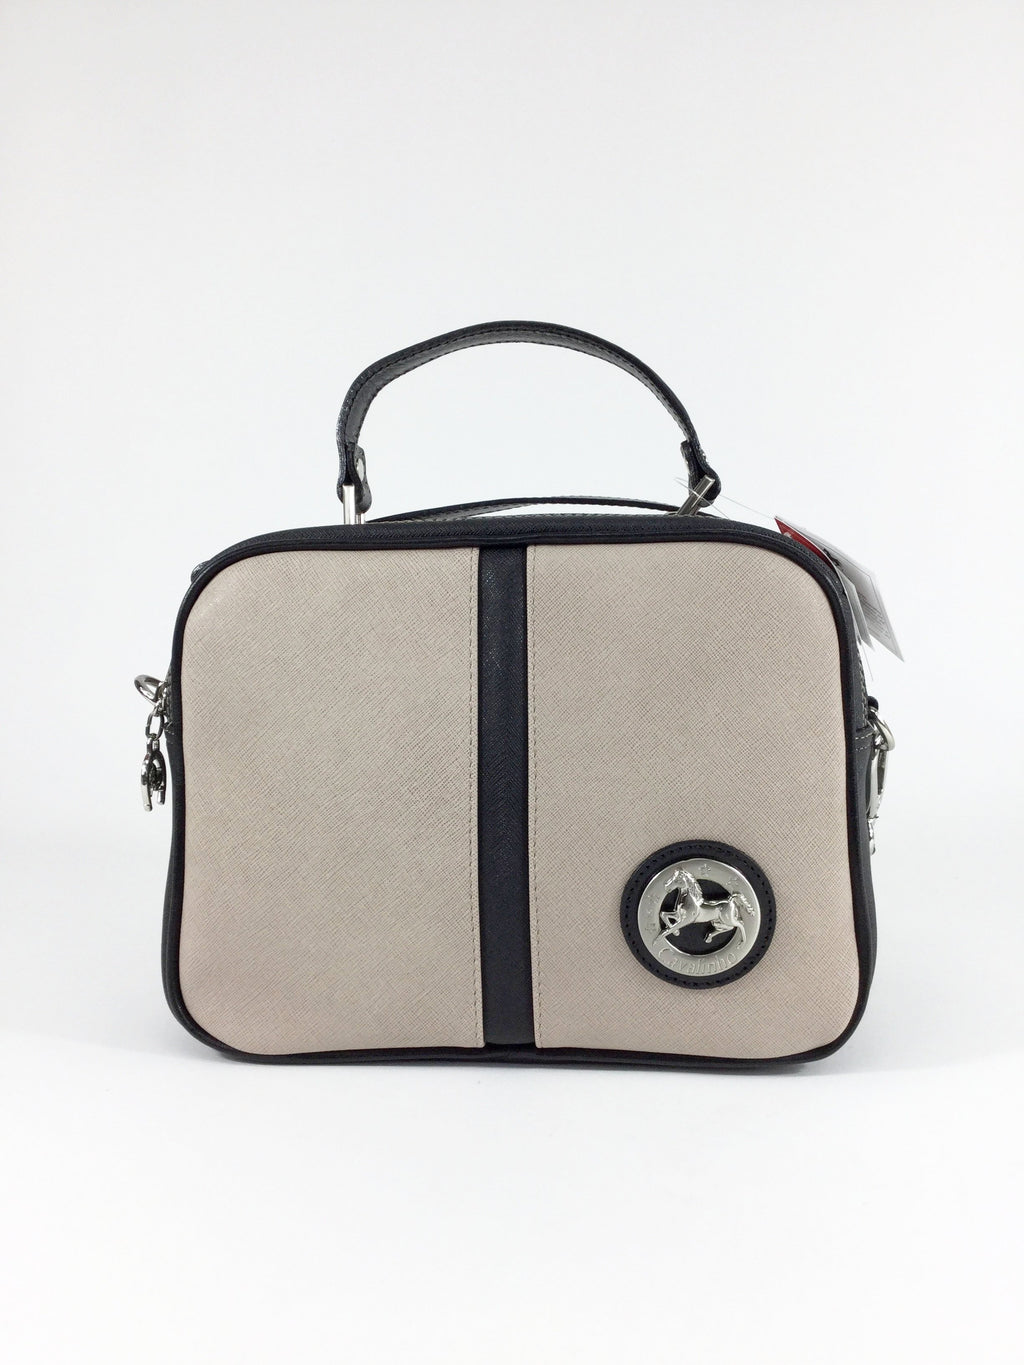 Black & Beige Handbag